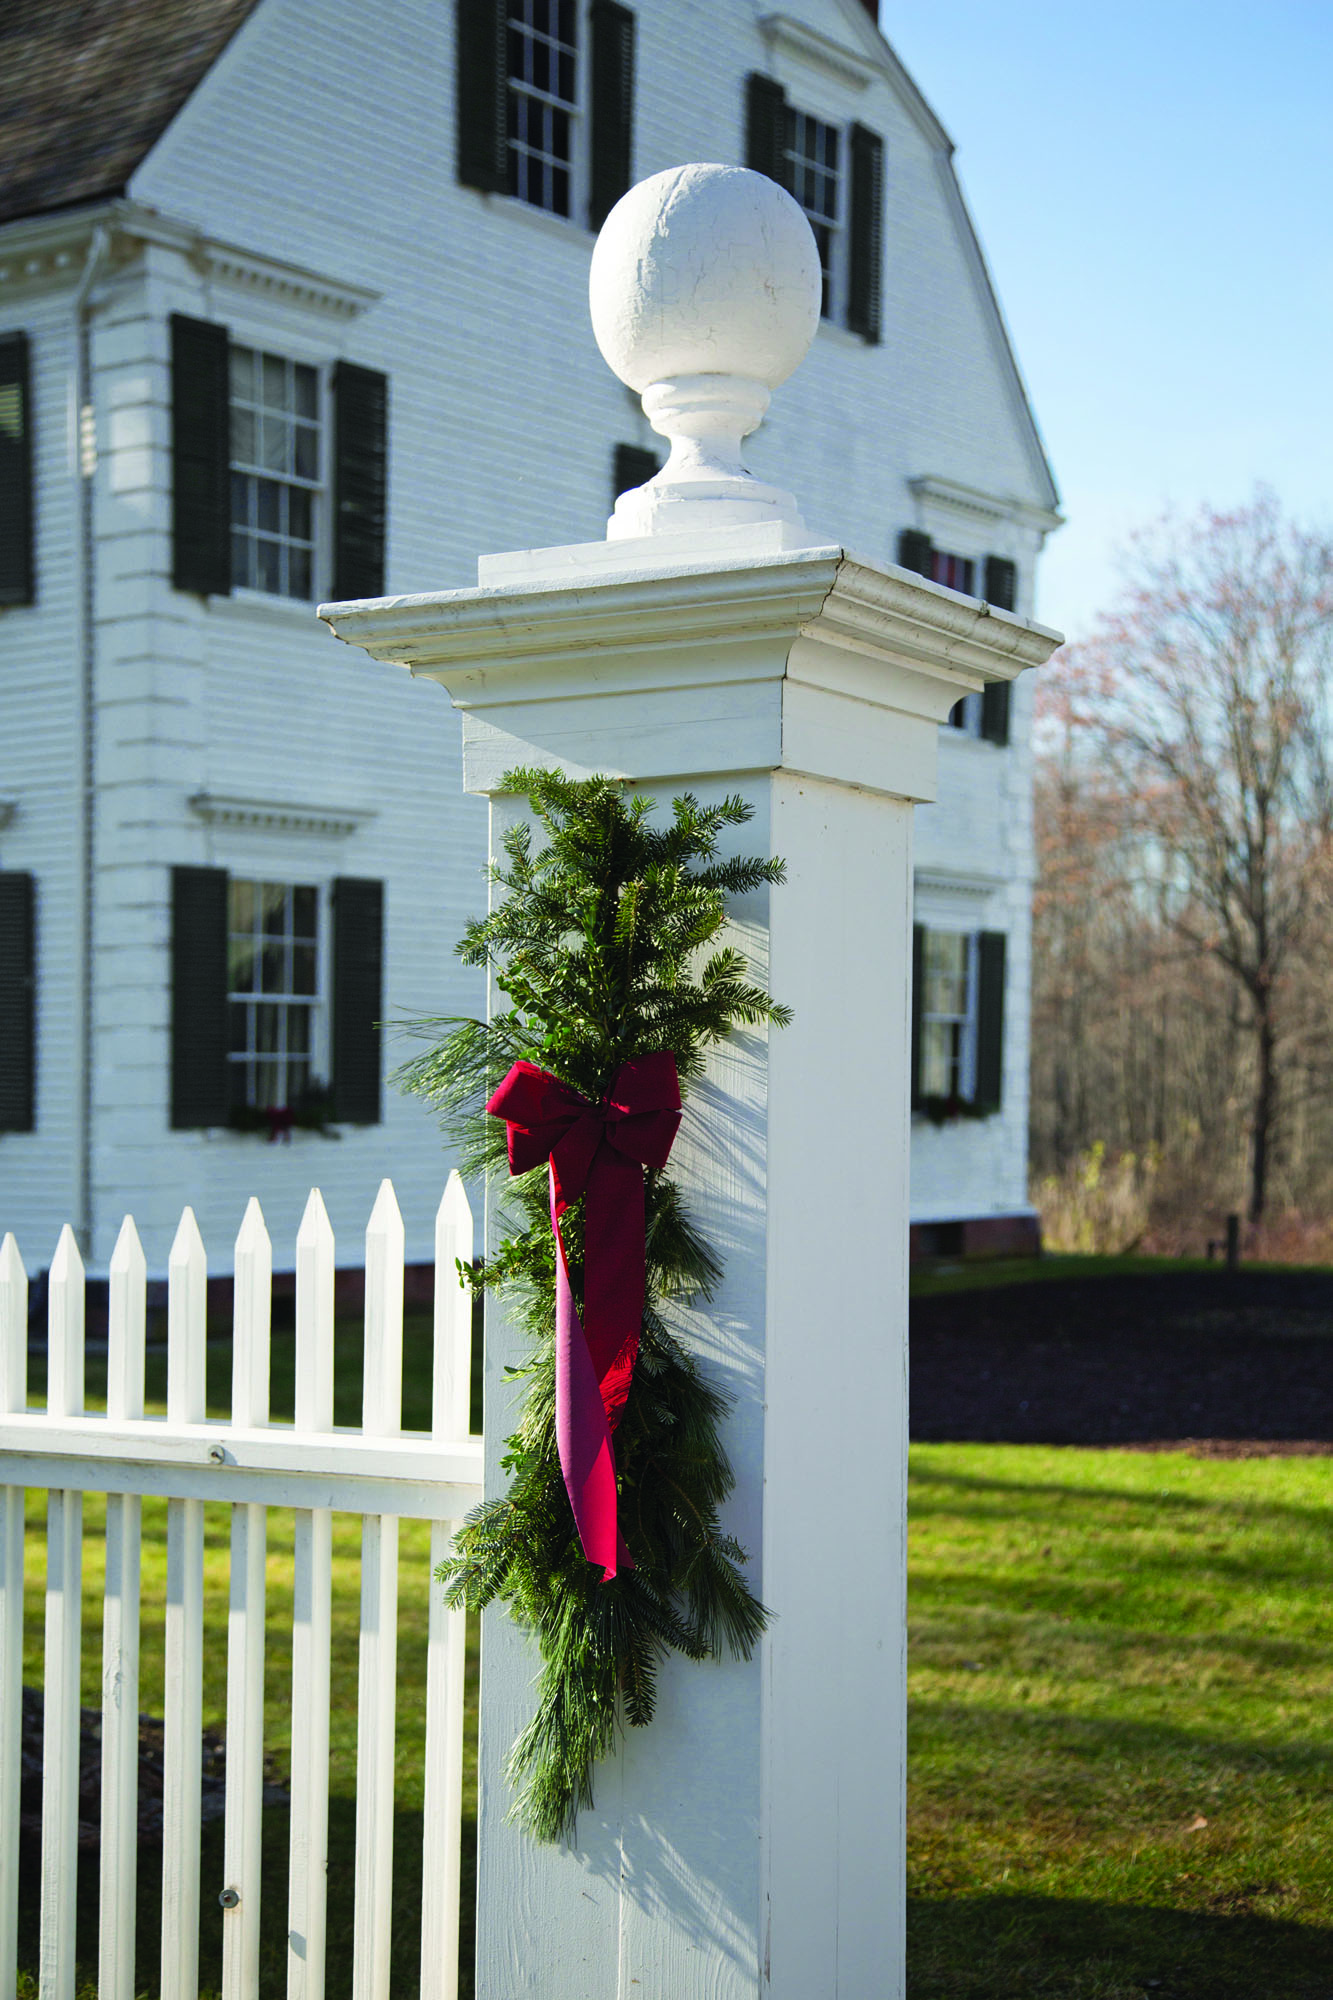 Simple, seasonal decorations include sprigs of balsam and white pine tips hung on a nail at gateposts.